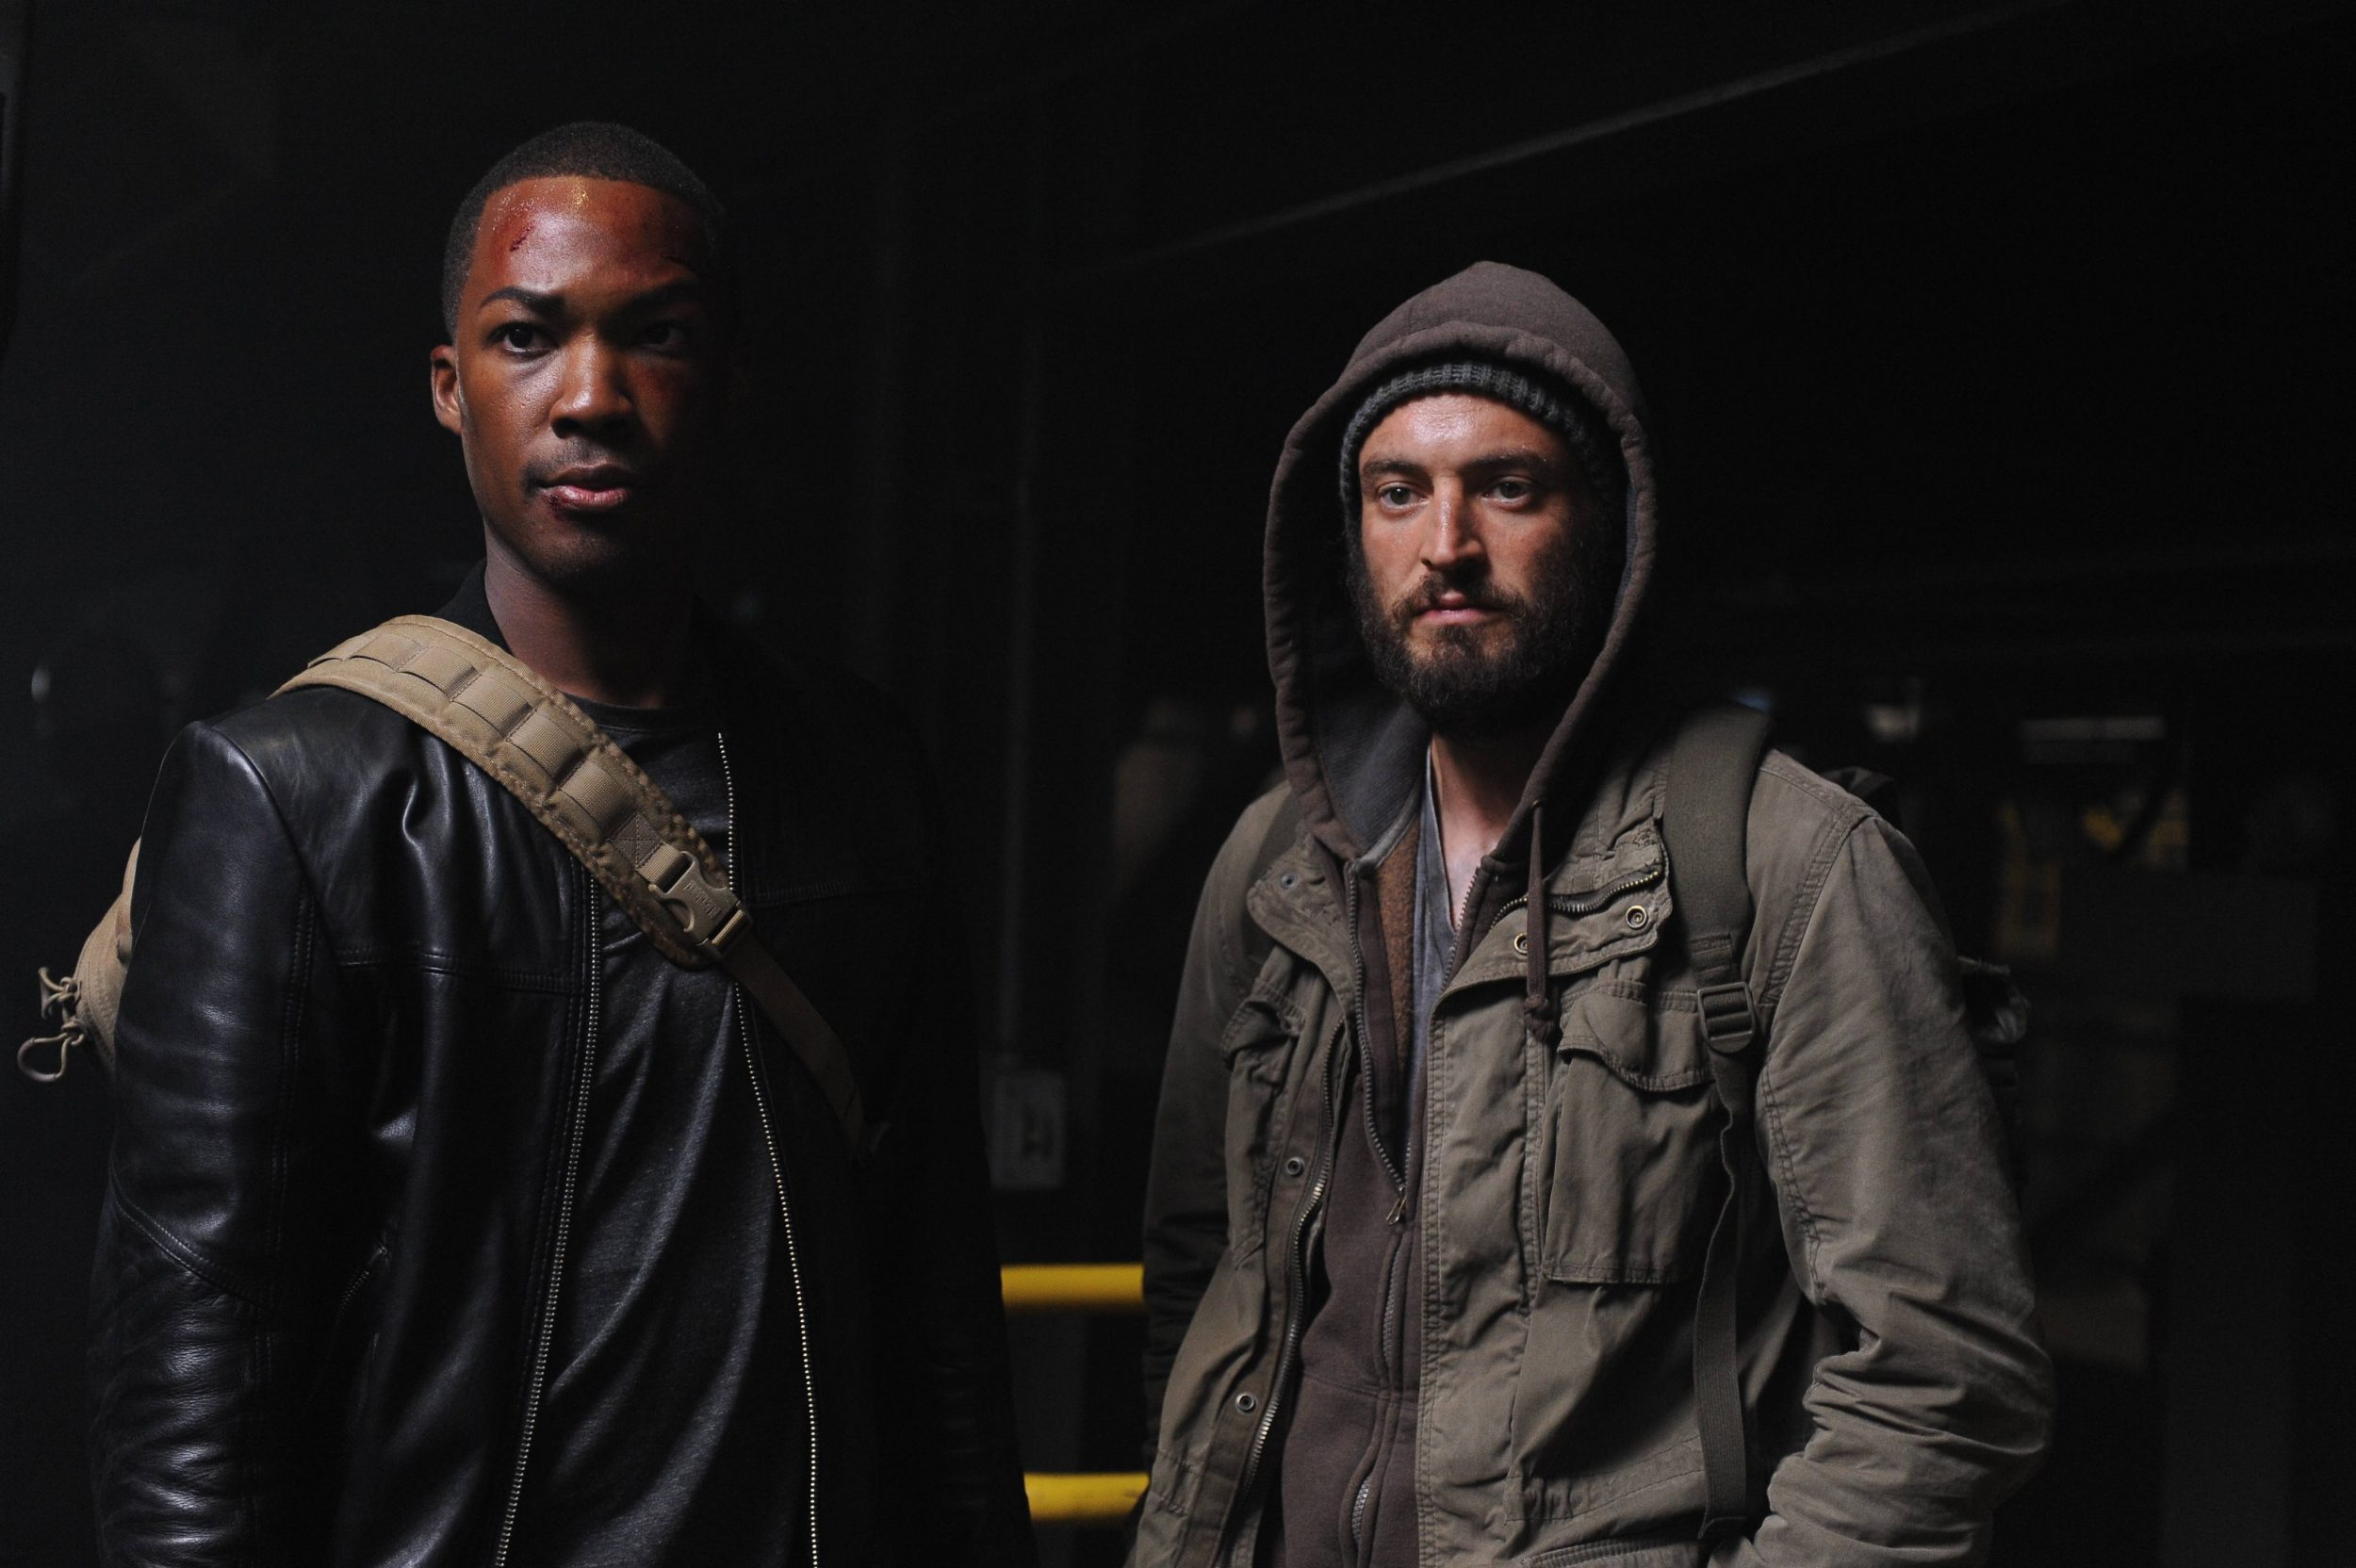 """24: LEGACY: L-R: Corey Hawkins and Charlie Hofheimer. 24: LEGACY begins its two-night premiere event following """"SUPERBOWL LI"""" on Sunday, Feb. 5, and will continue Monday, Feb. 6 on FOX. ©2016 Fox Broadcasting Co. Cr: Ray Mickshaw/FOX"""